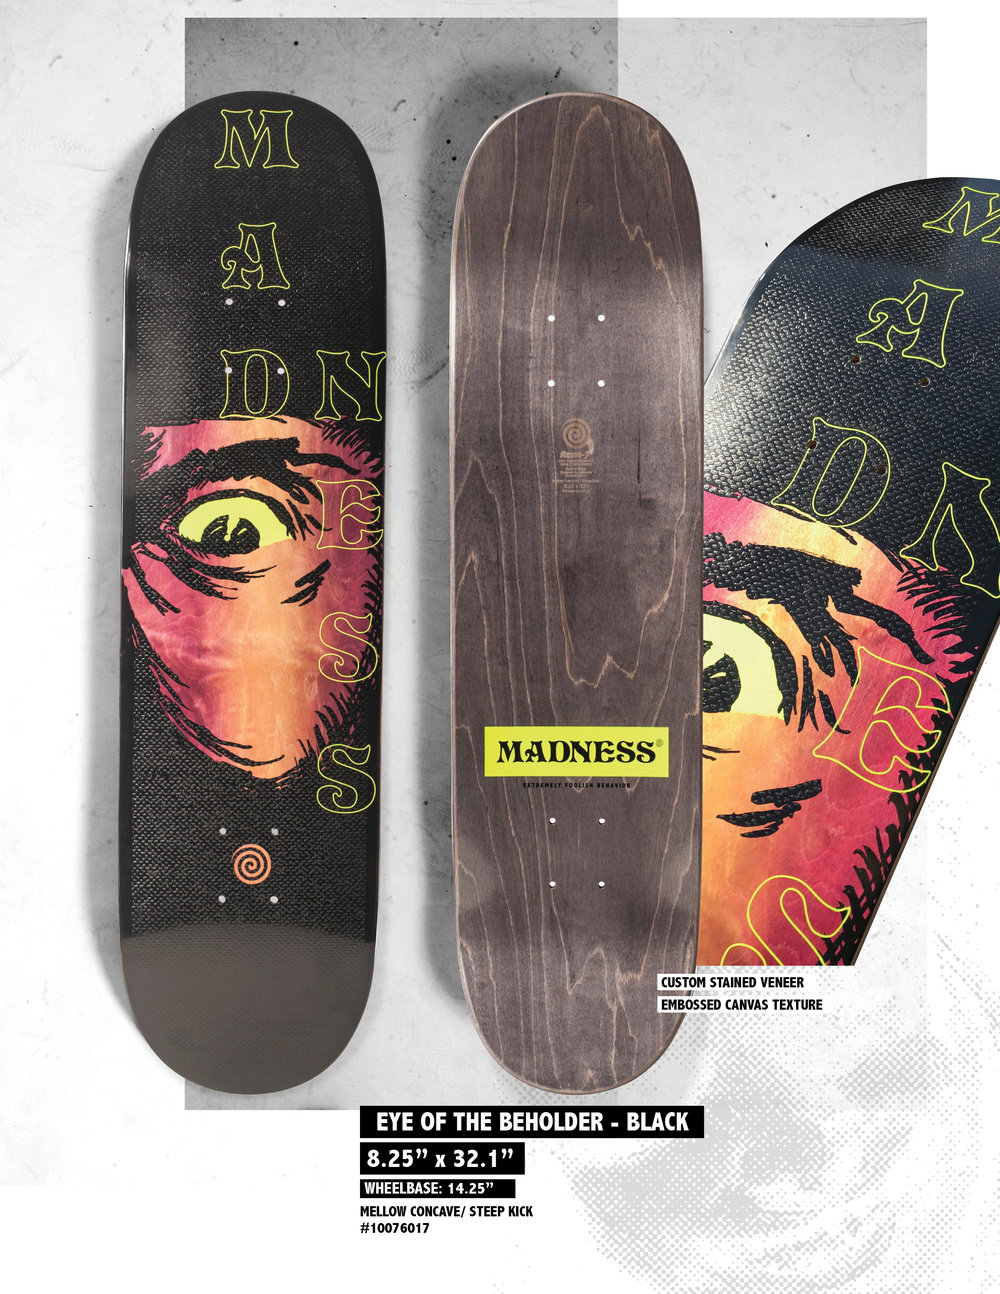 Madness_Spring_1920_Eye_of_the_beholder_Skateboard_Deck.jpg